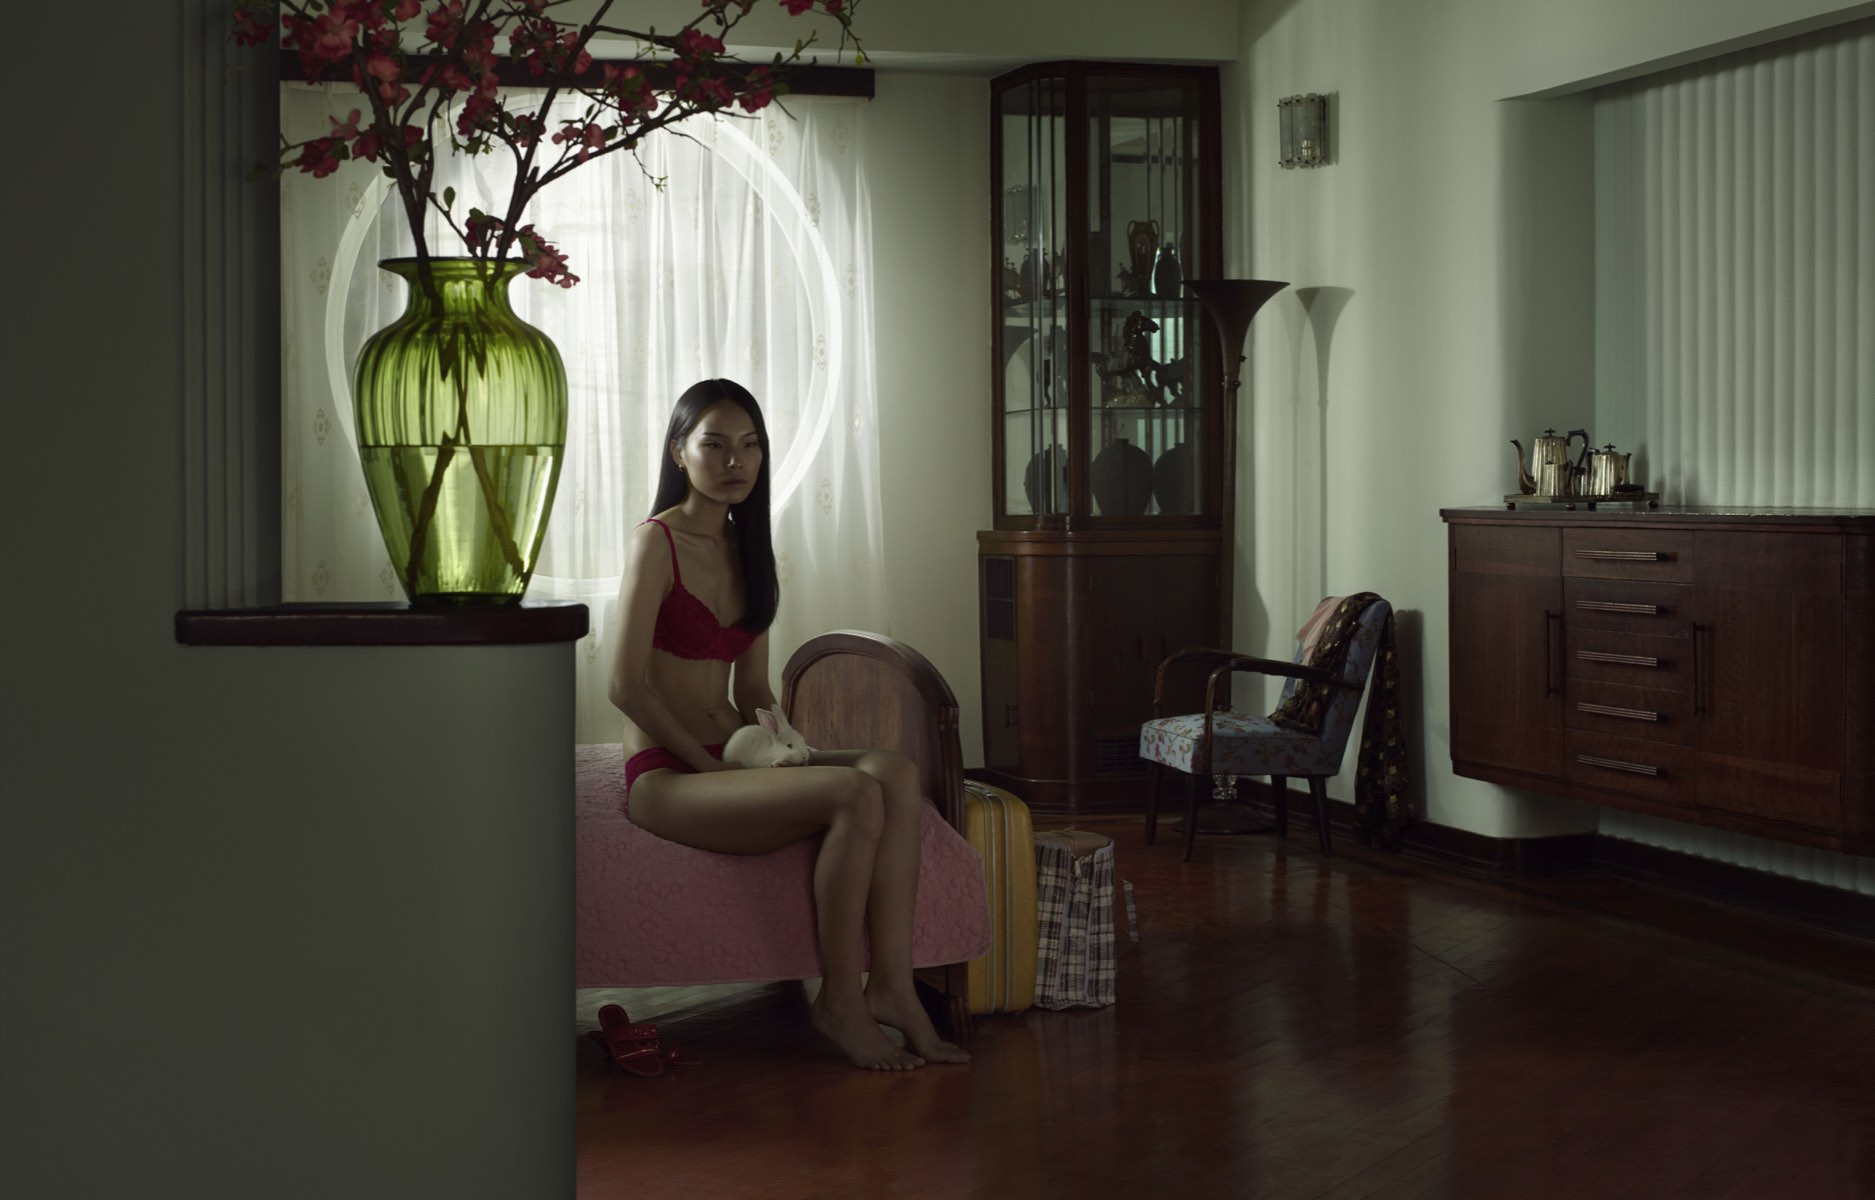 shanghai-erwin-olaf10-photography-of-china.jpeg